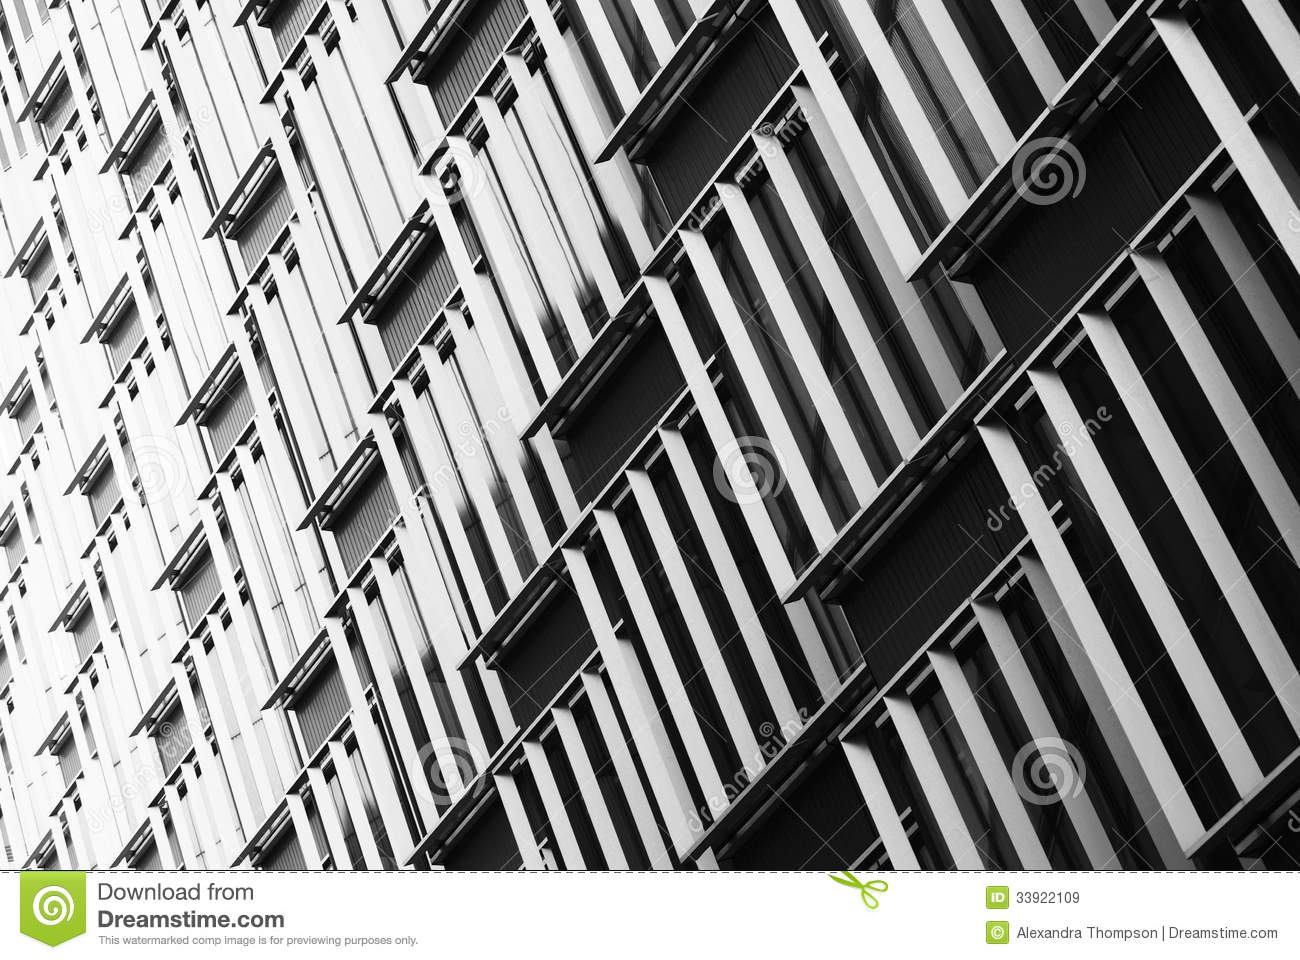 Modern Architecture Pattern modern architectural patterns royalty free stock images - image